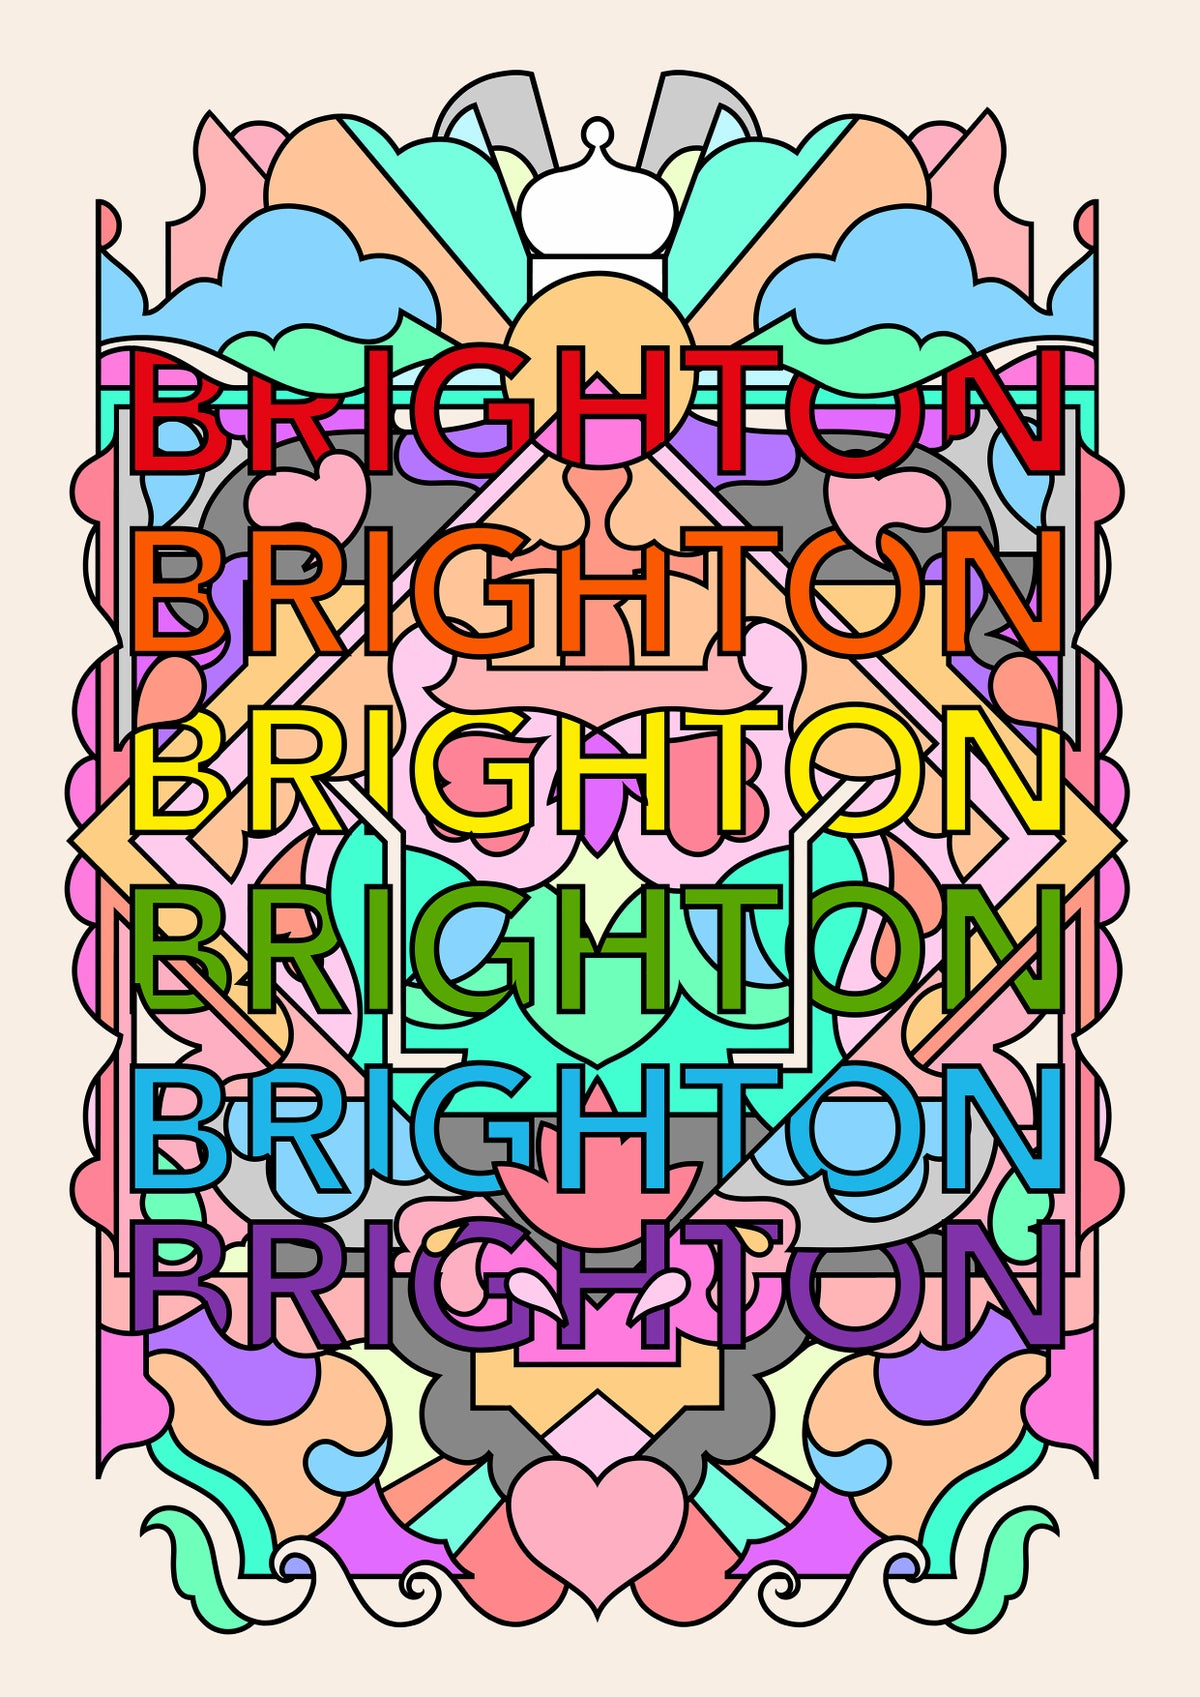 Image of Brighton Rock, 2019 - A3 print